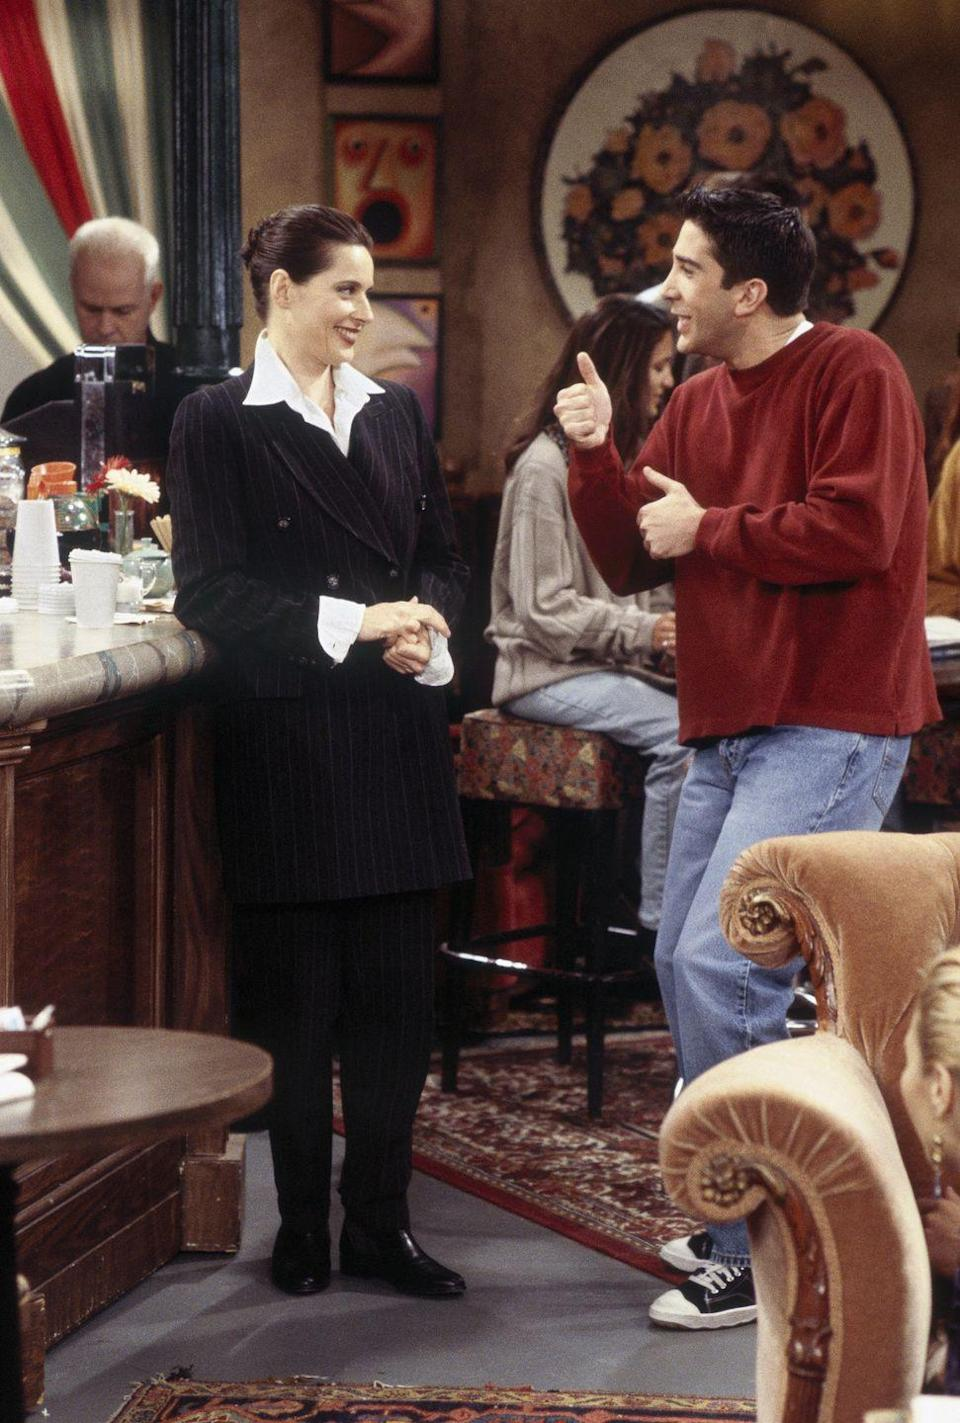 """<p>The Italian actress and filmmaker, Isabella Rossellini, visited Central Perk as herself right after Ross decides she is """"too international"""" to remain on his celebrity hall pass list. The hilarious cameo begins with him asking Isabella out, only to end with her finding out he bumped her off of his list for Winona Ryder.</p>"""